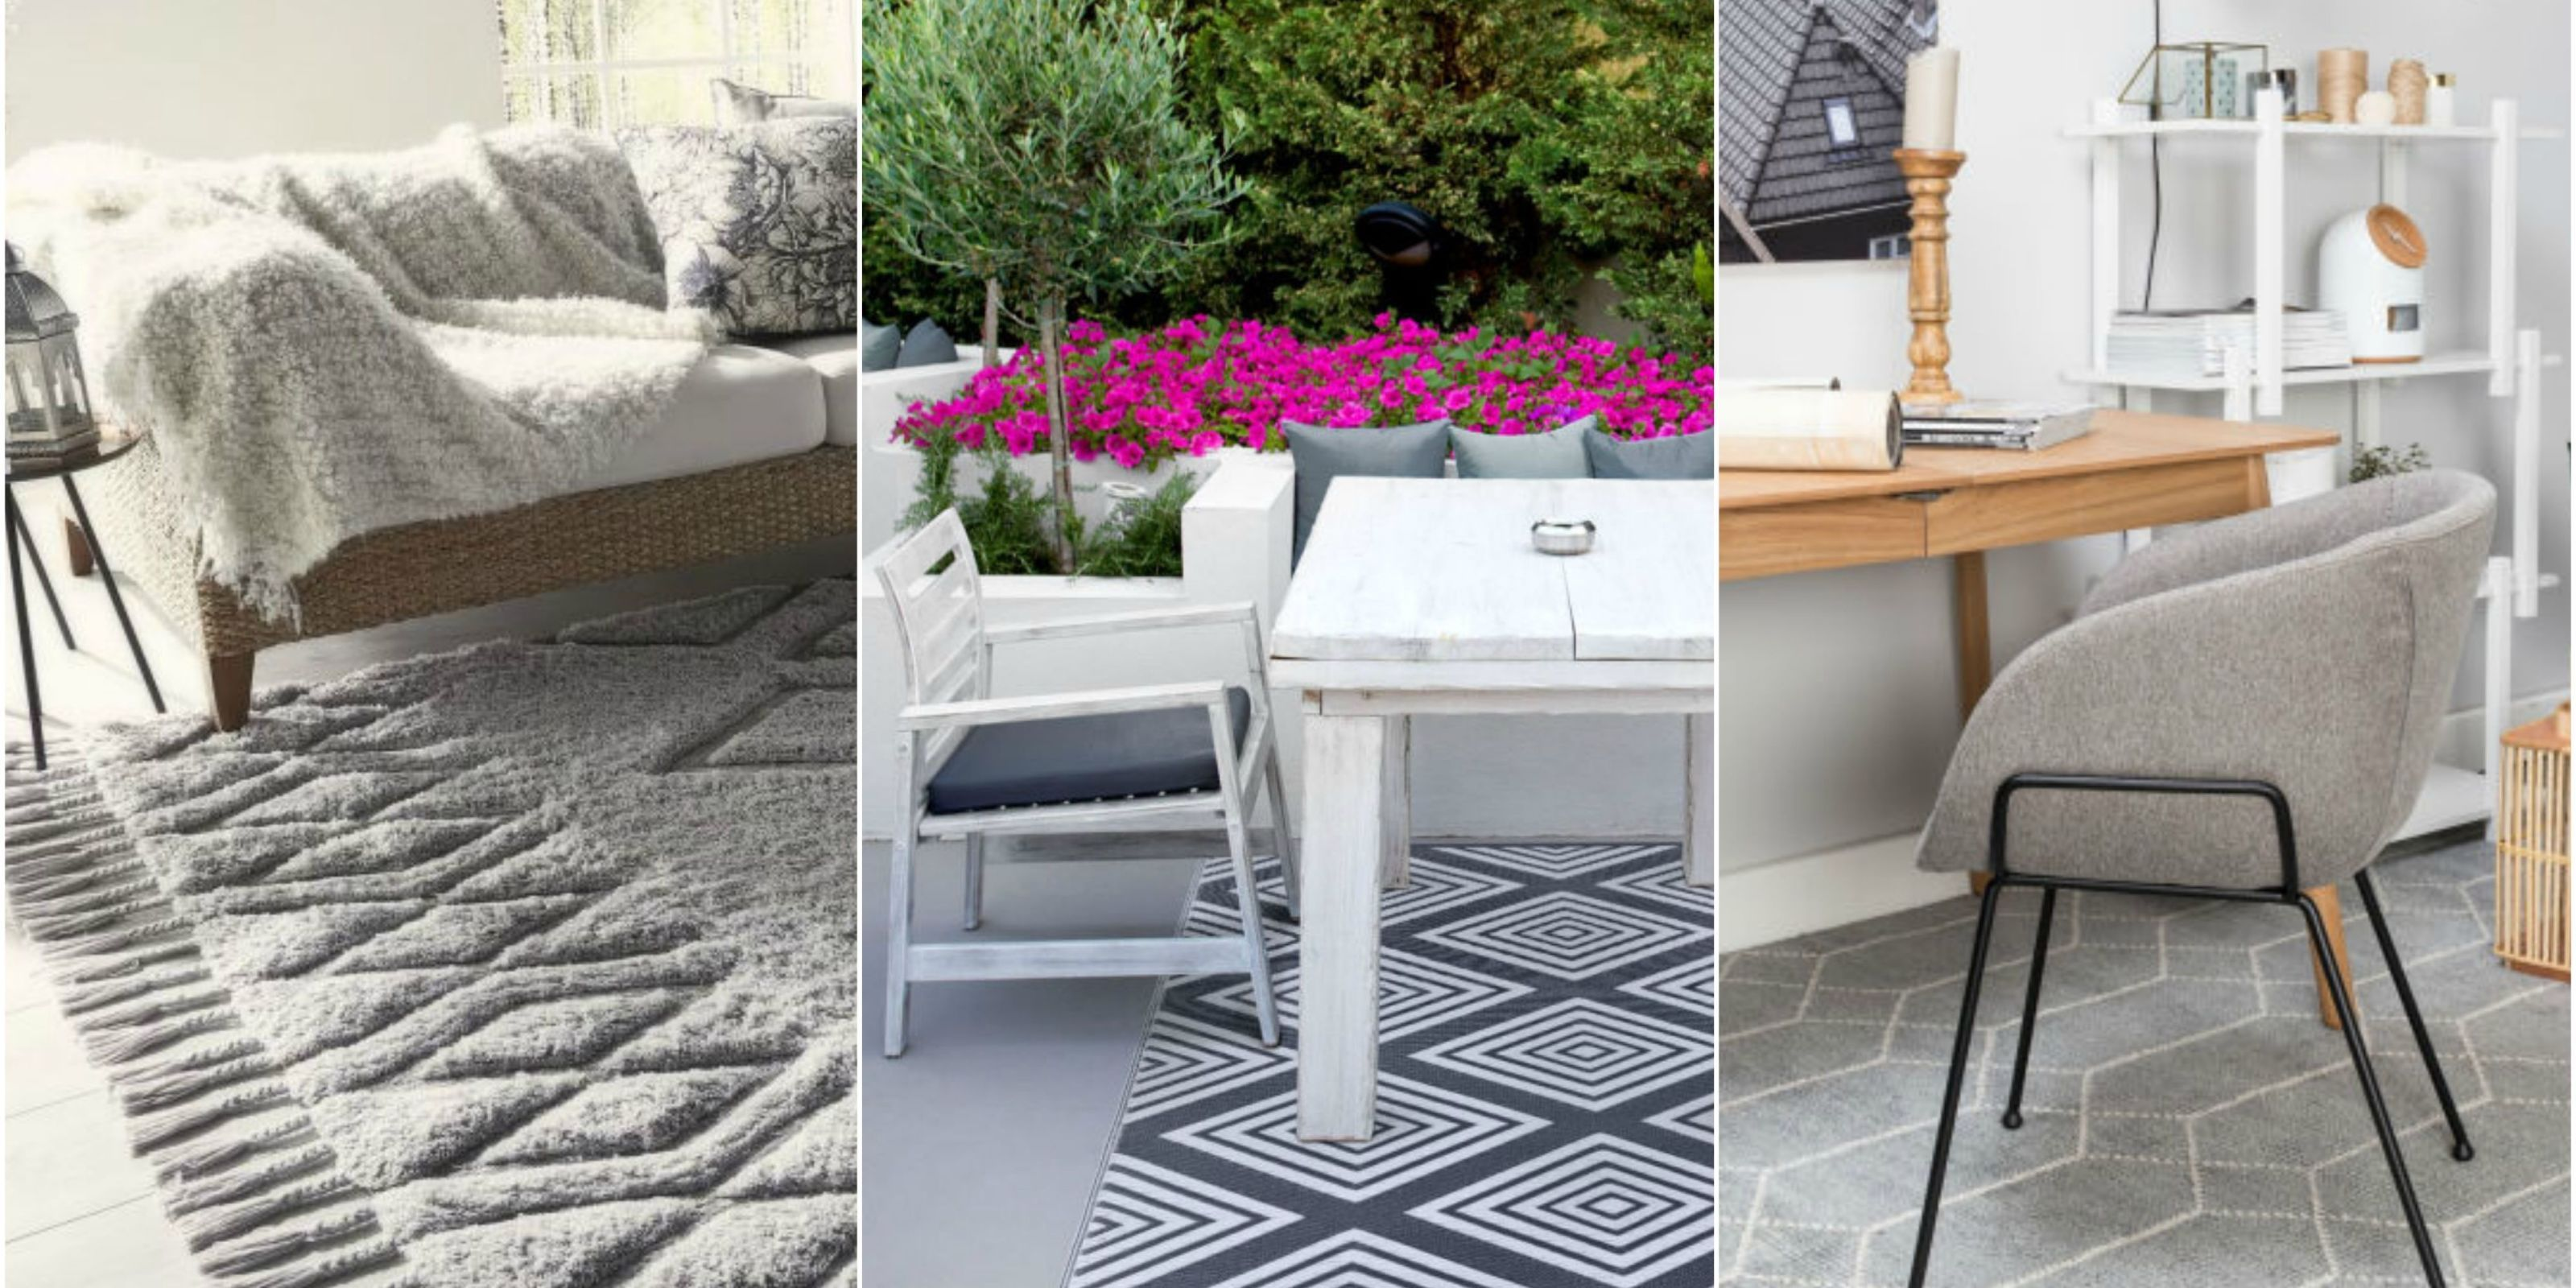 A Large, Good Quality Rug Is Often The Perfect Accessory To Update Your  Living Space, But With So Many Designs And Colours On Offer, It Can Be  Difficult To ...